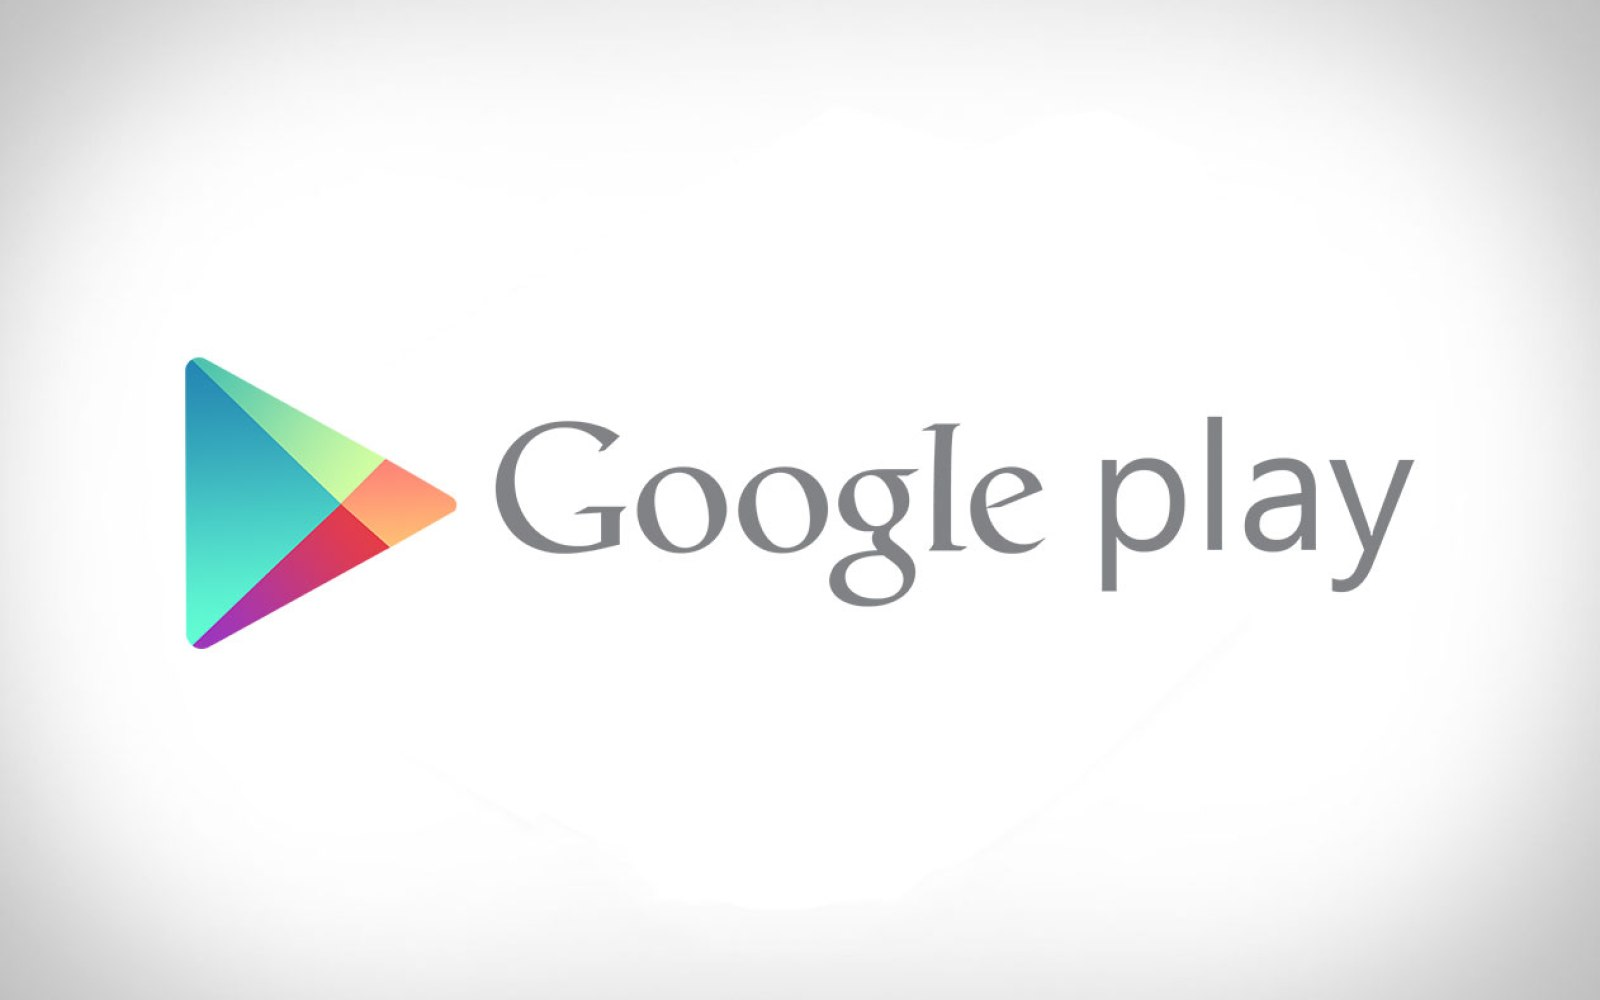 Google Play two hour refund policy now official for apps and games